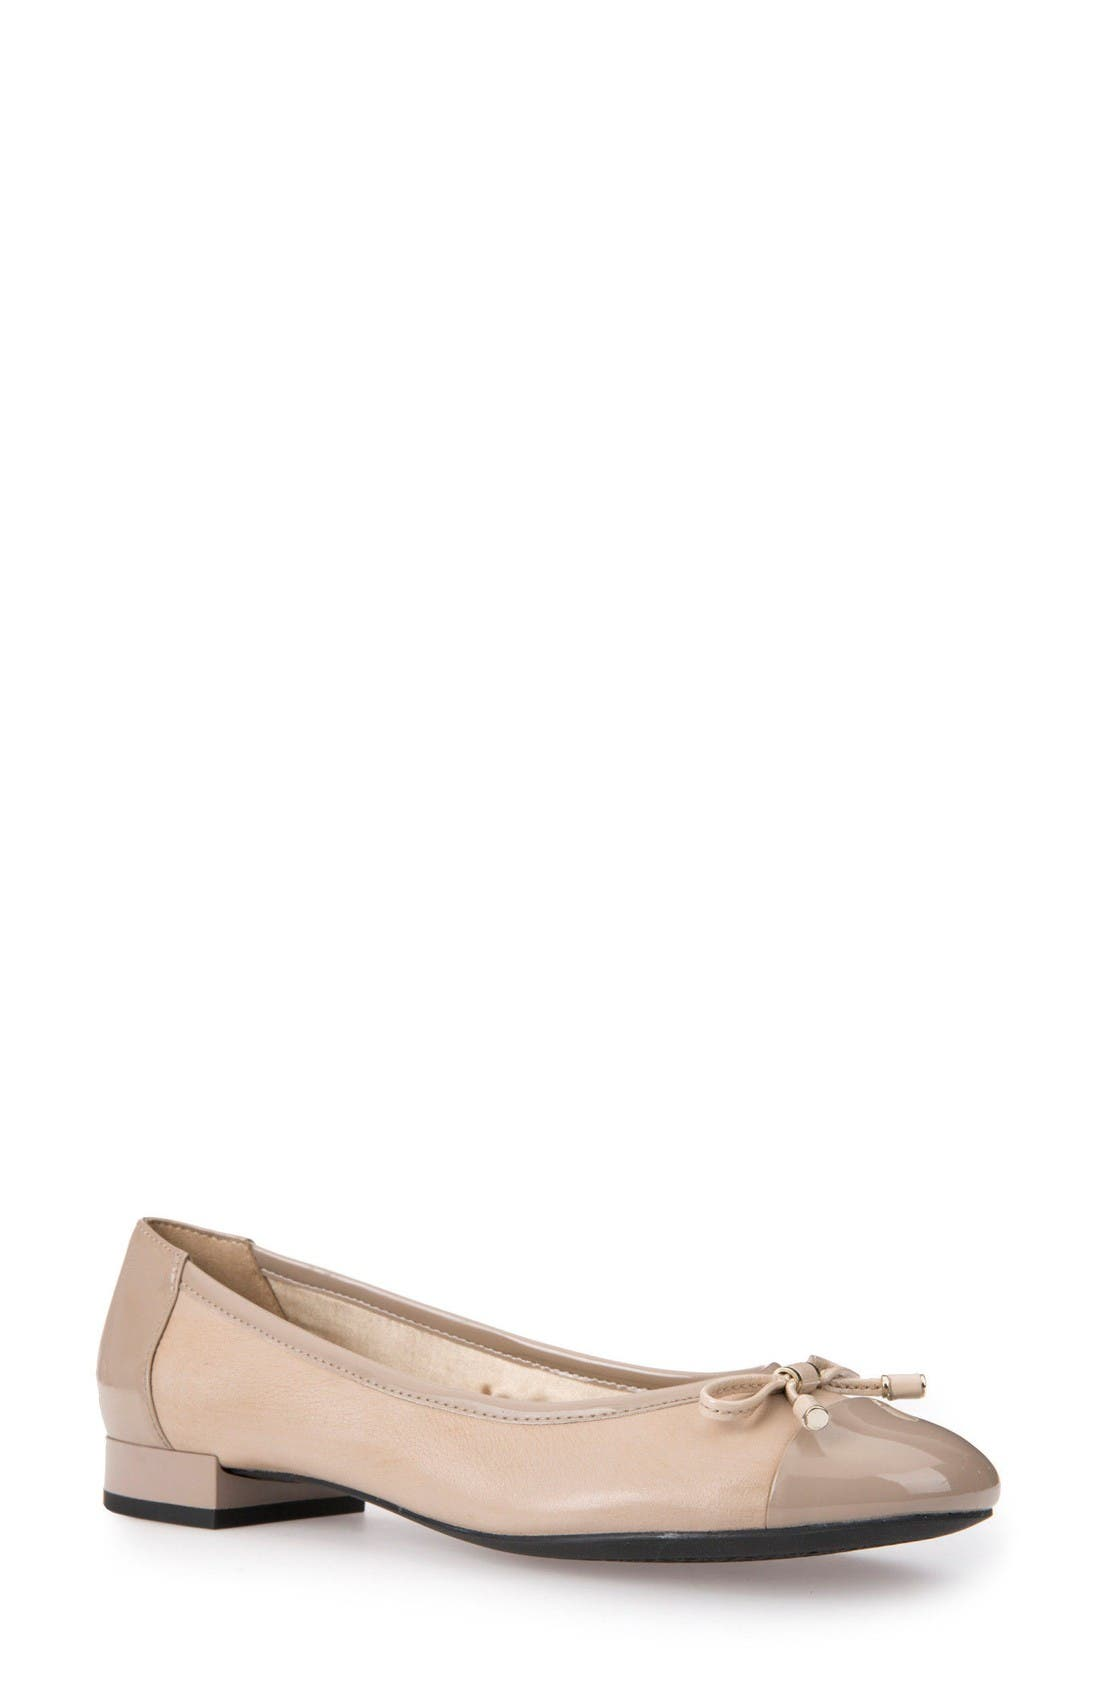 Wistrey Flat,                             Main thumbnail 1, color,                             Taupe Leather